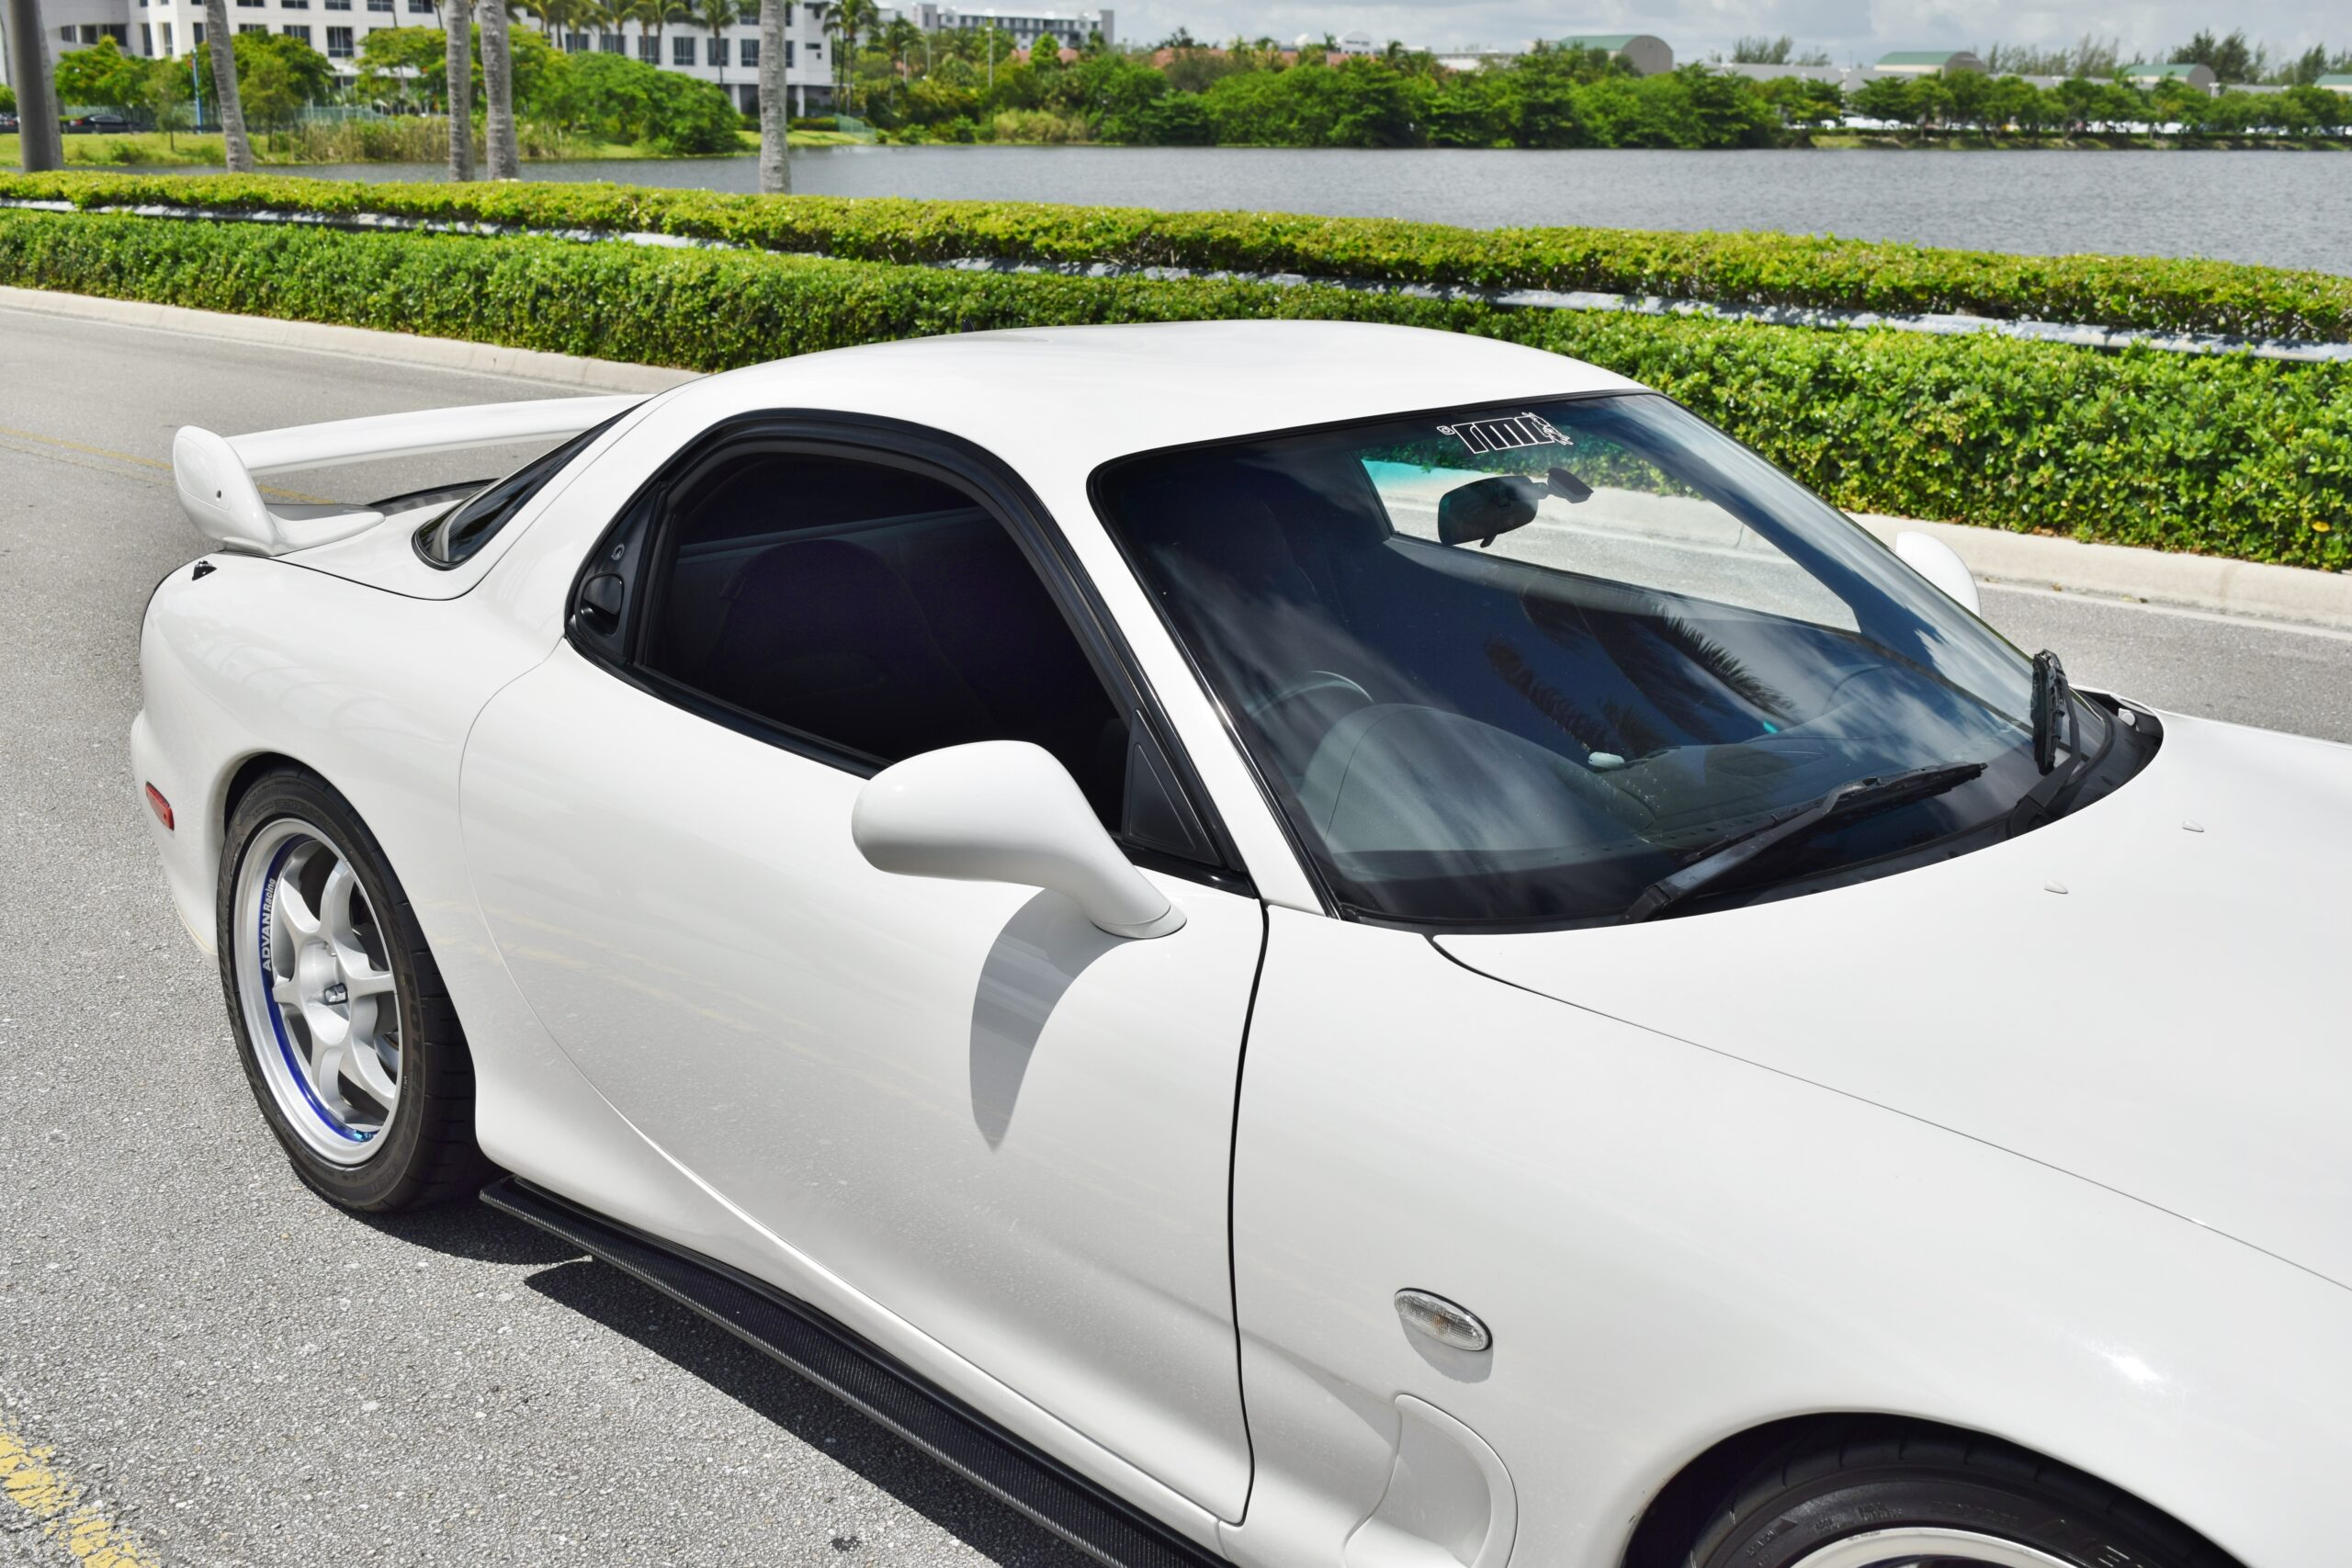 1999 Mazda RX-7 Twin Turbo FD3S JDM R1-Only 76K Miles-Unmodified Motor-Advan Racing Wheels-Toms Advox Coilovers